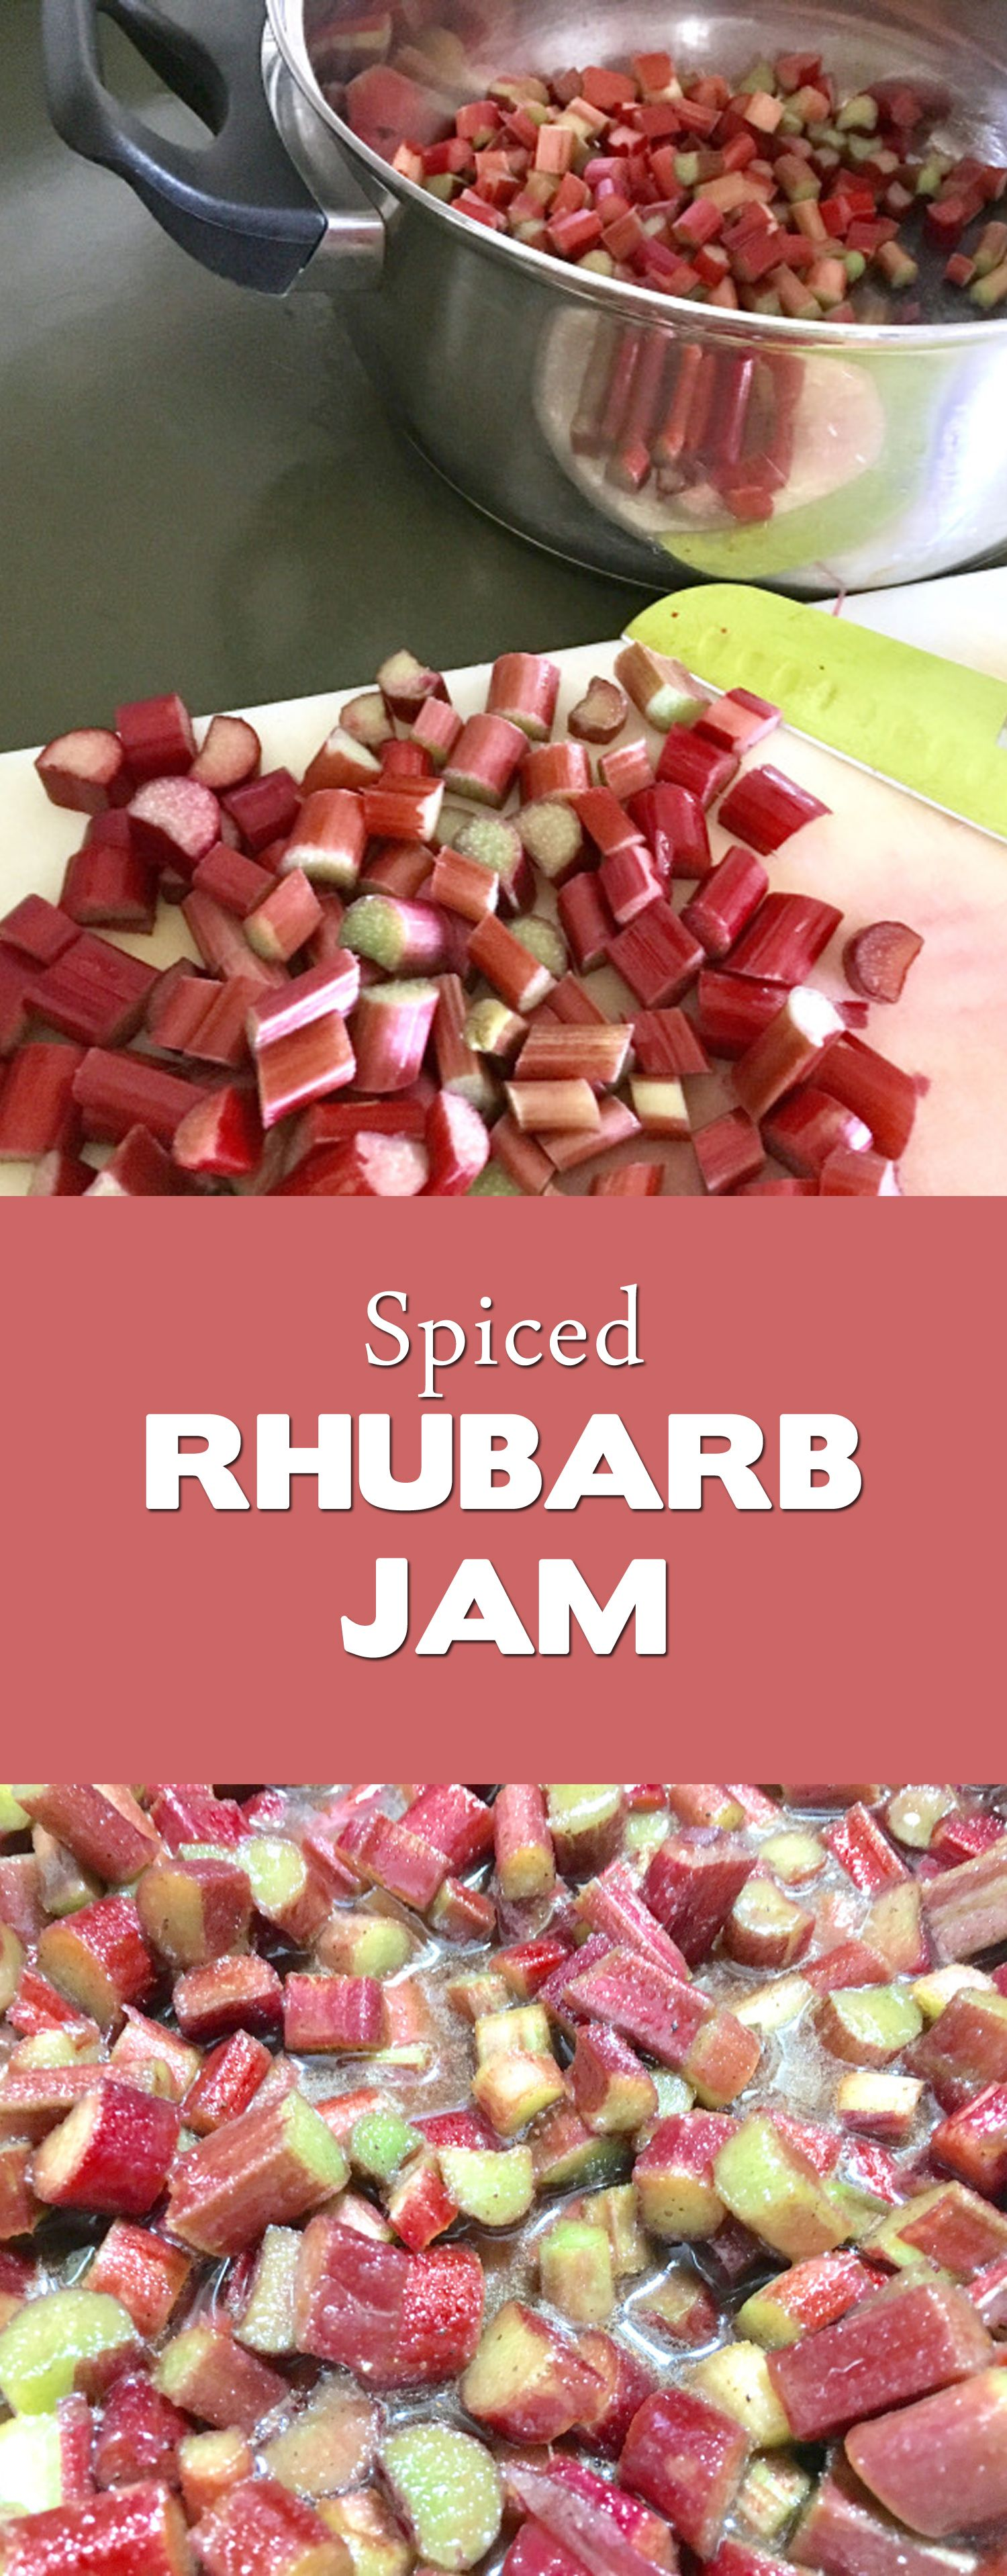 Spiced Rhubarb Jam Recipe Rhubarb Jam Rhubarb Recipes Rhubarb